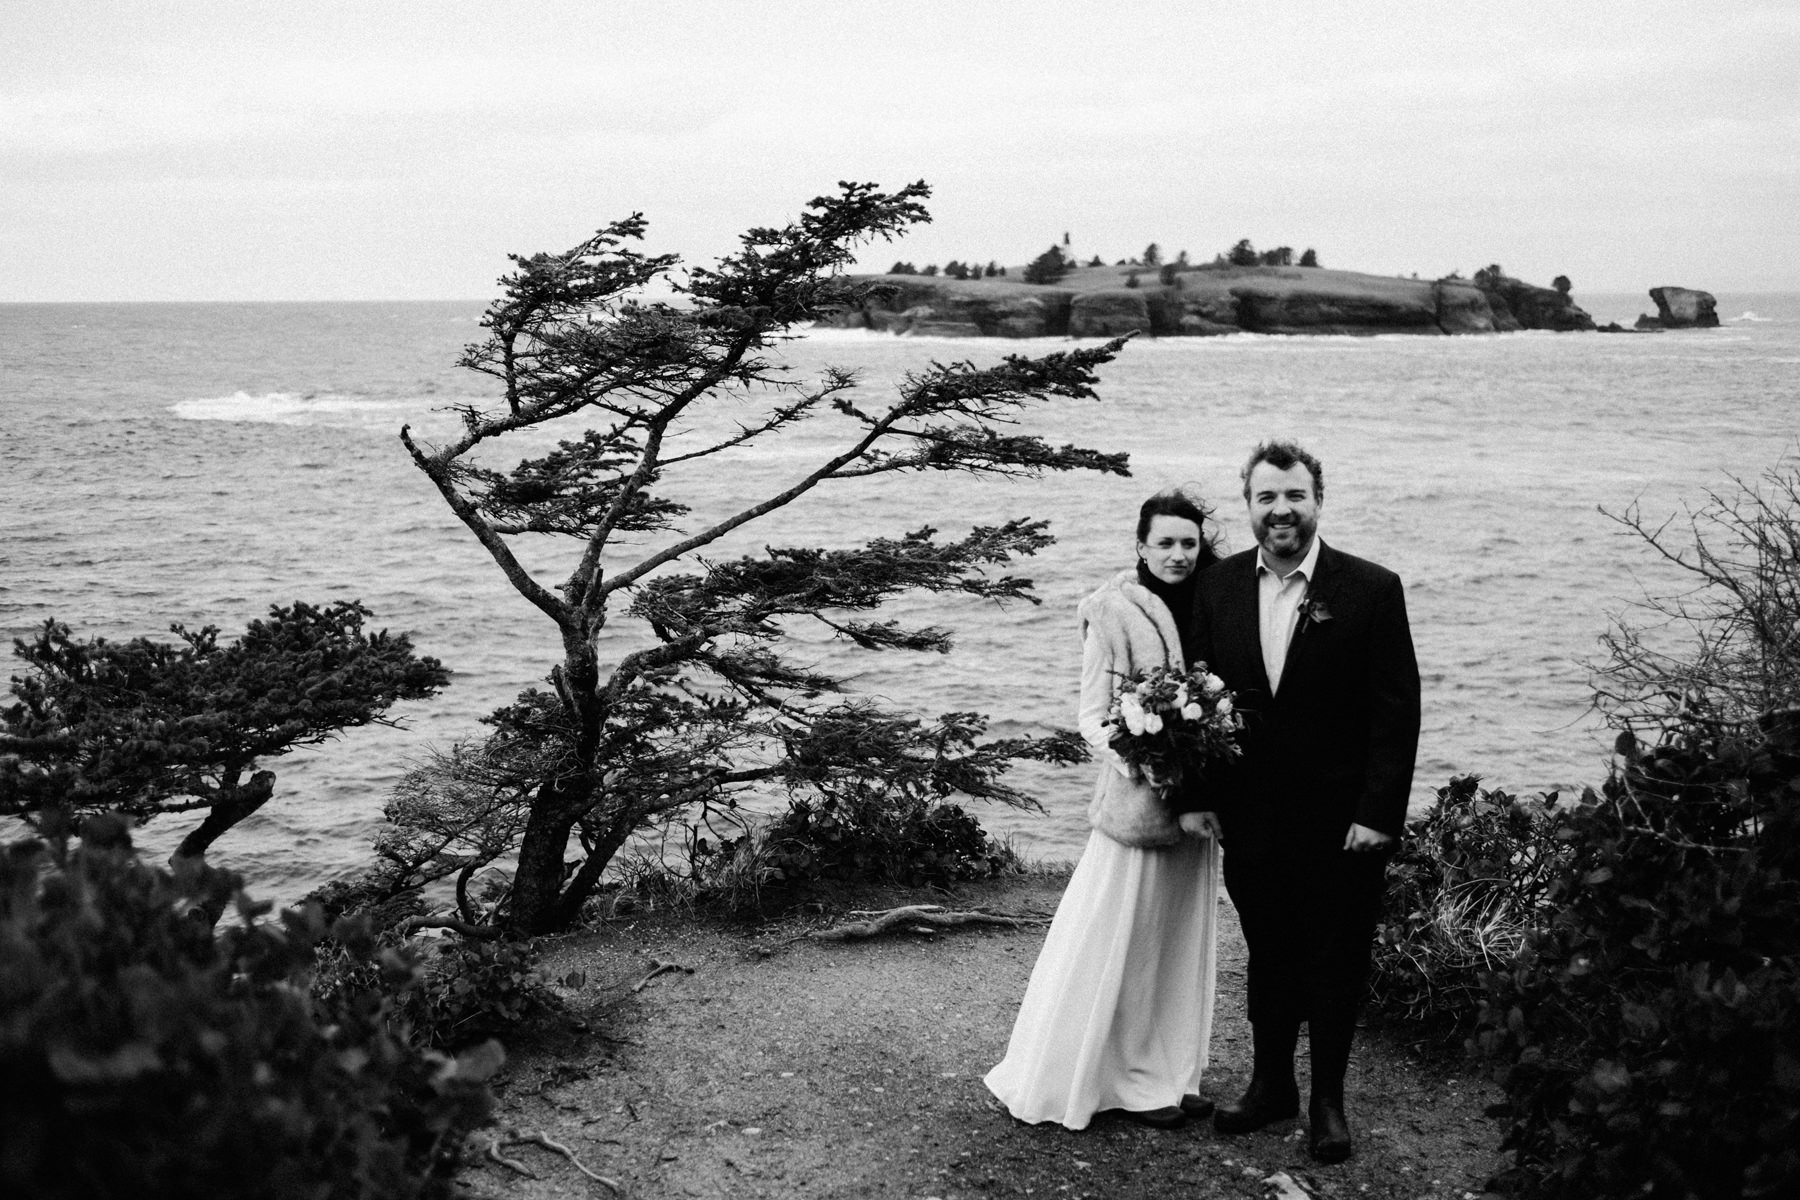 181-cloudy-pnw-elopement-on-film-at-cape-flattery-in-washington.jpg